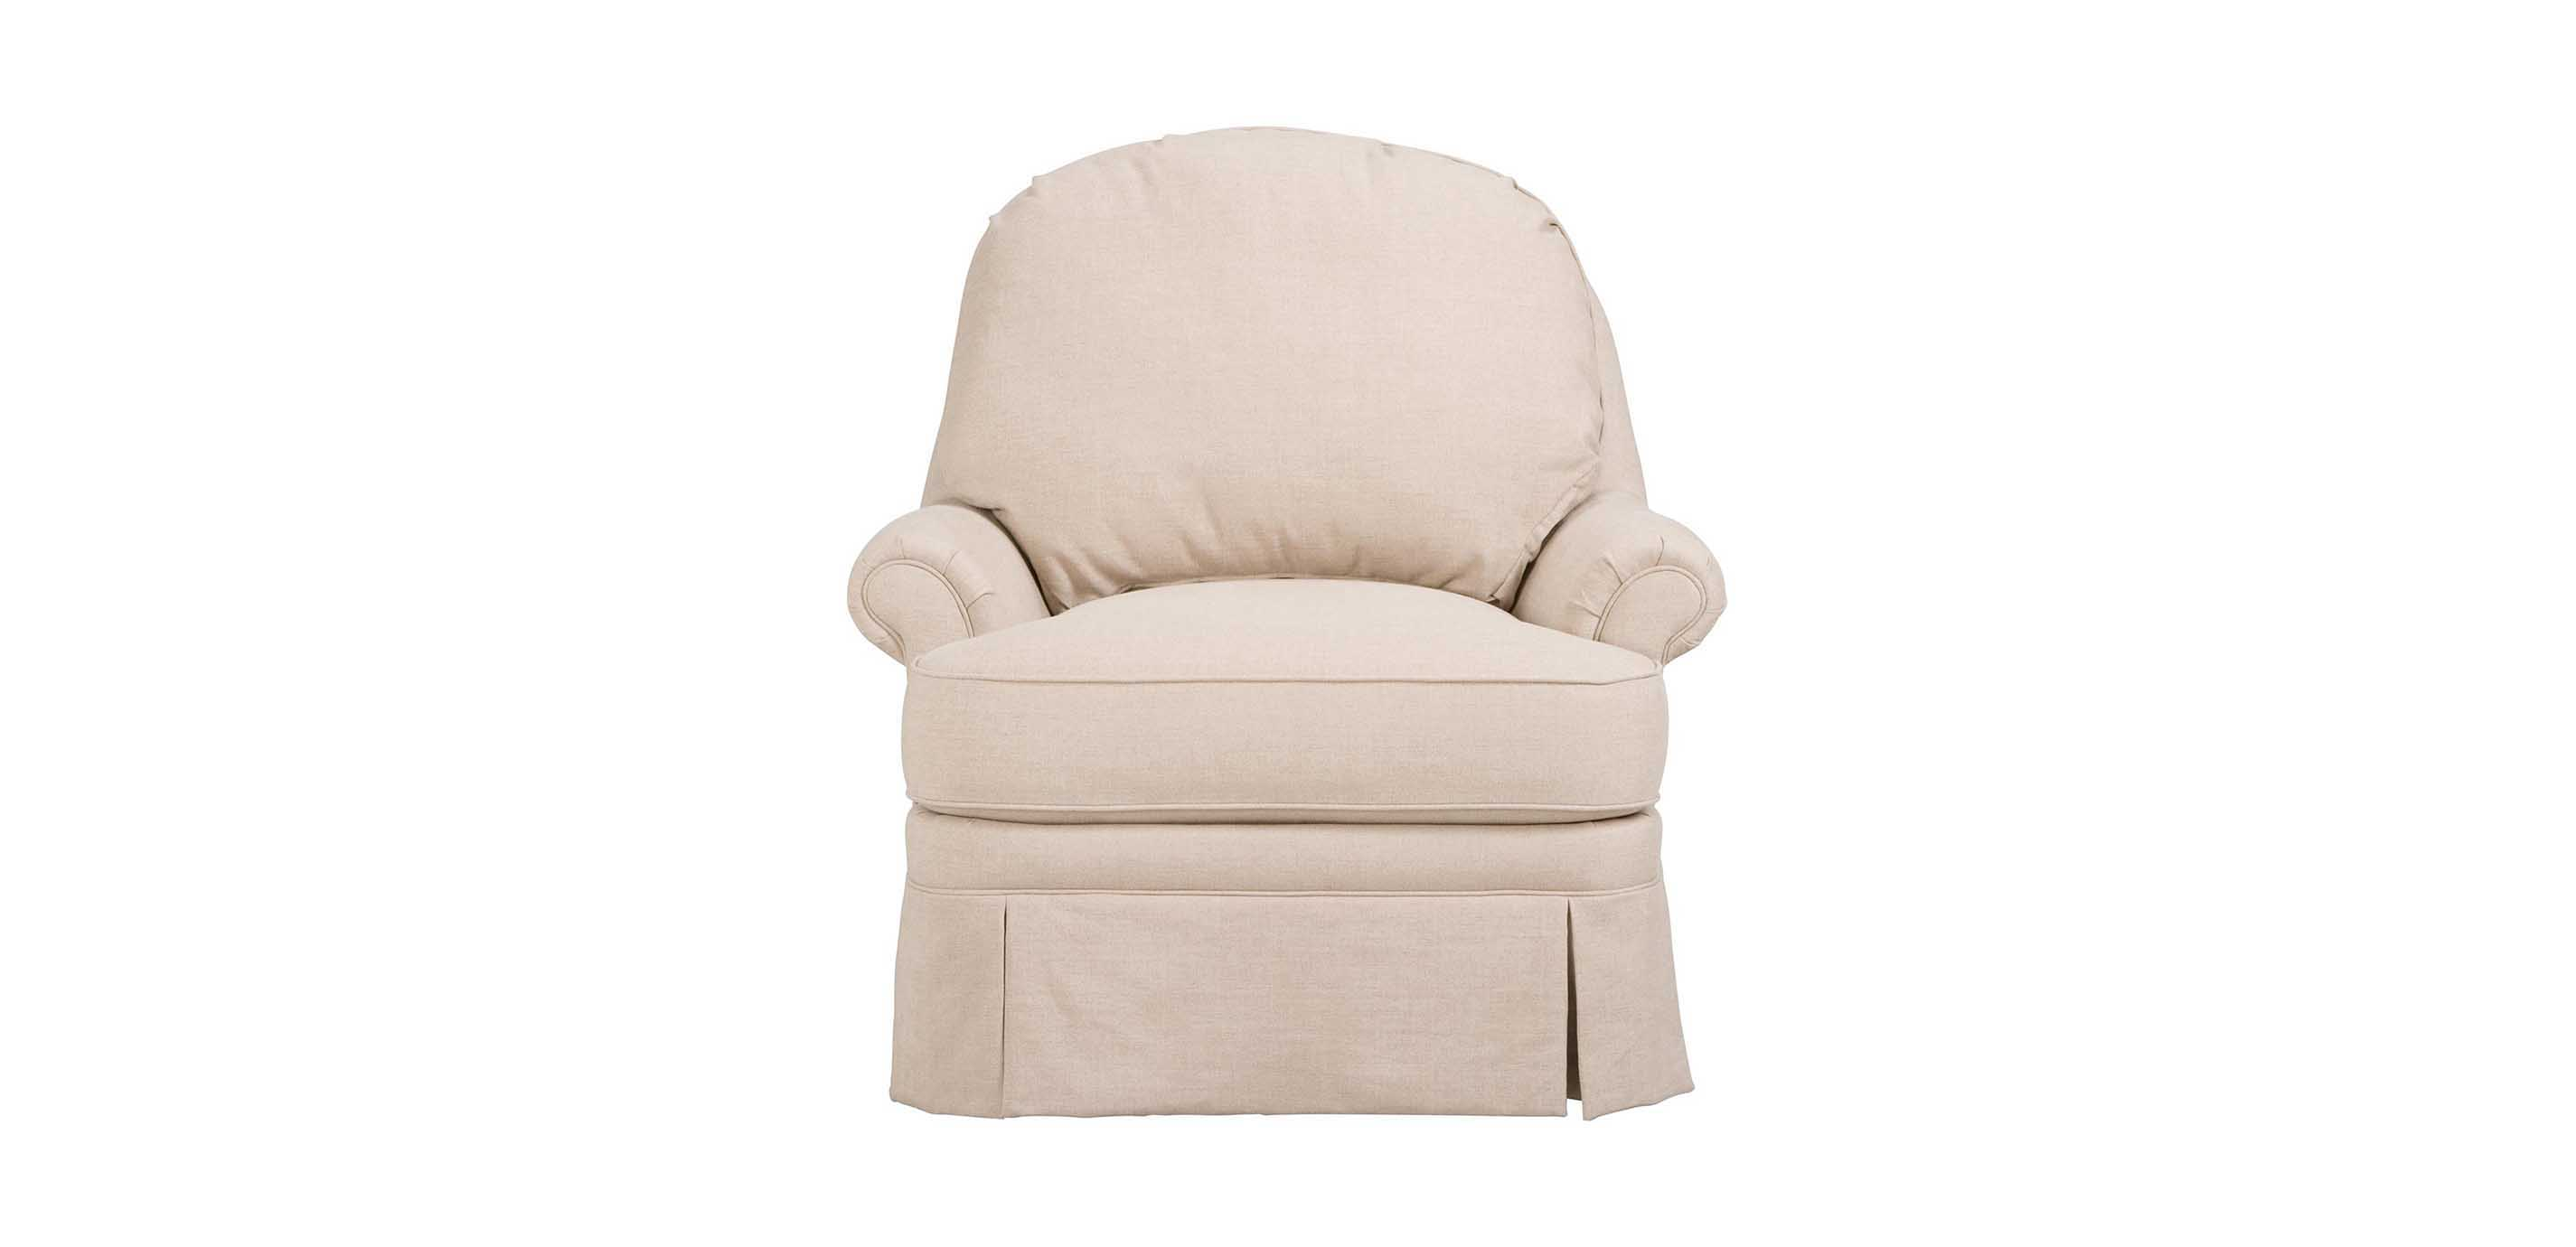 swivel chair king living cheap outside chairs charlotte and chaises ethan allen